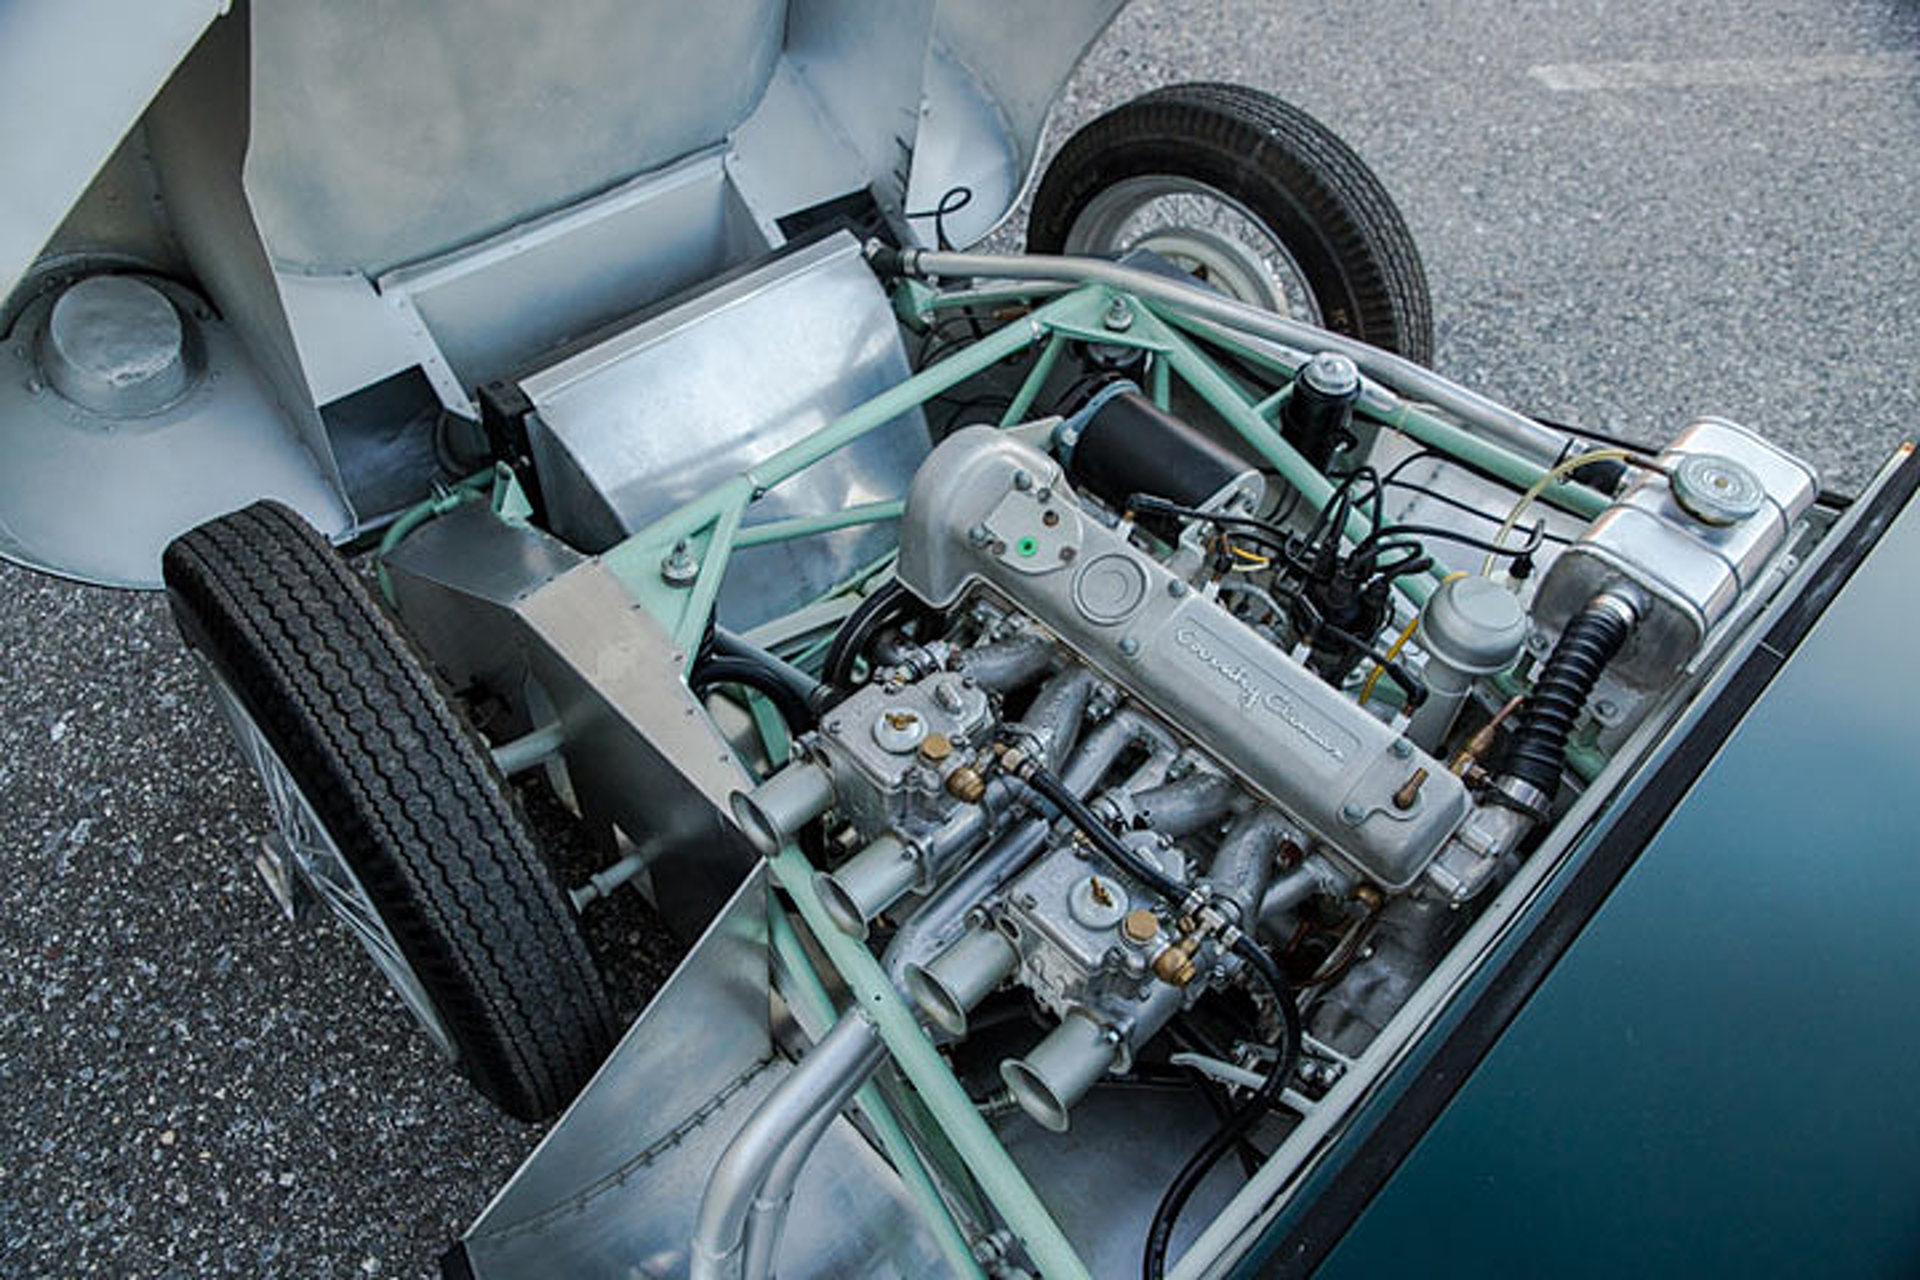 This Stunning 1956 Lotus Eleven Proves Less is More